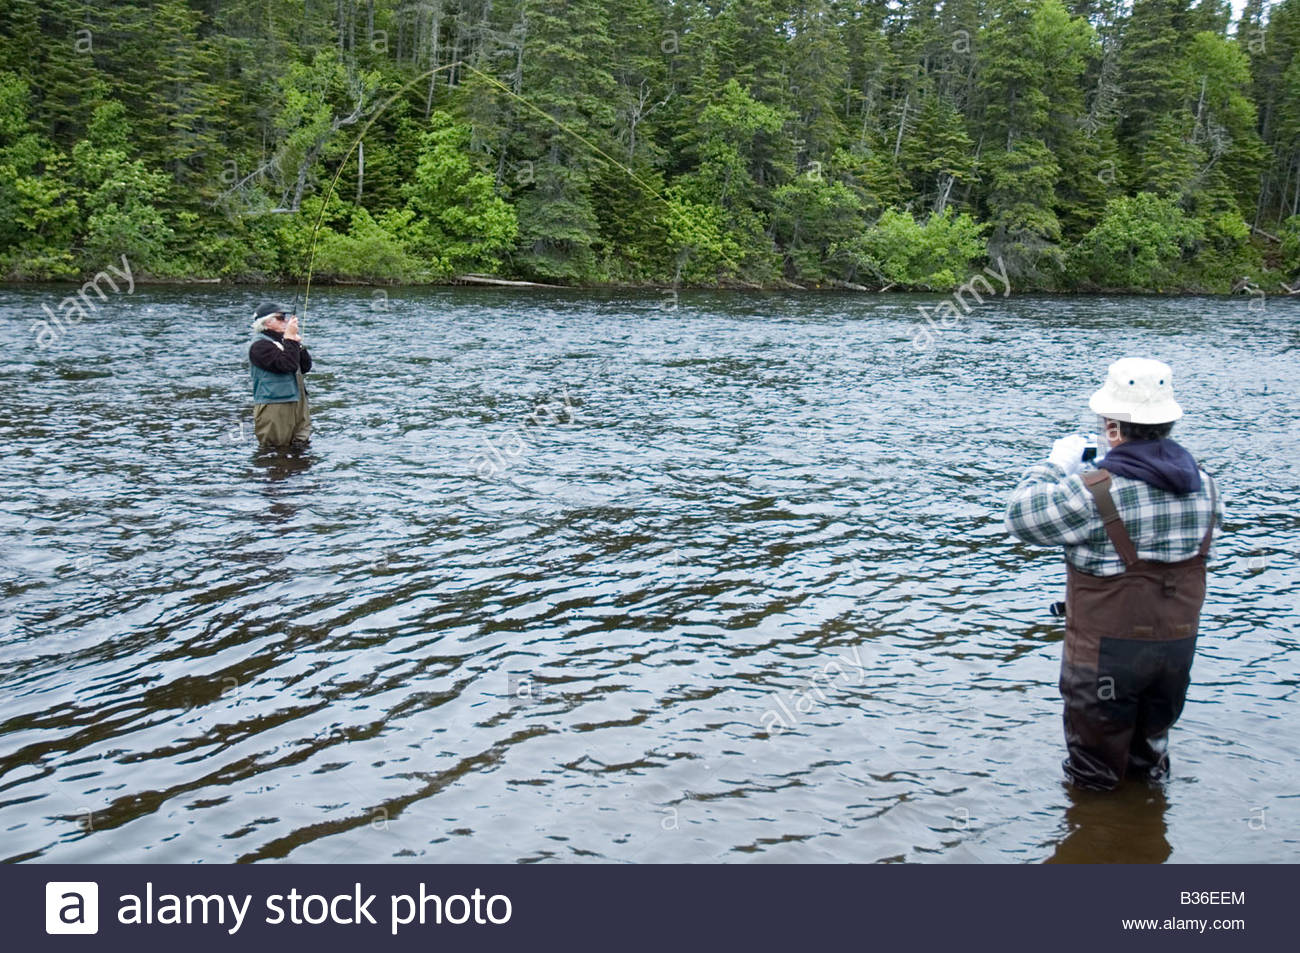 Fly fishing for atlantic salmon river of ponds for Stocked fishing ponds